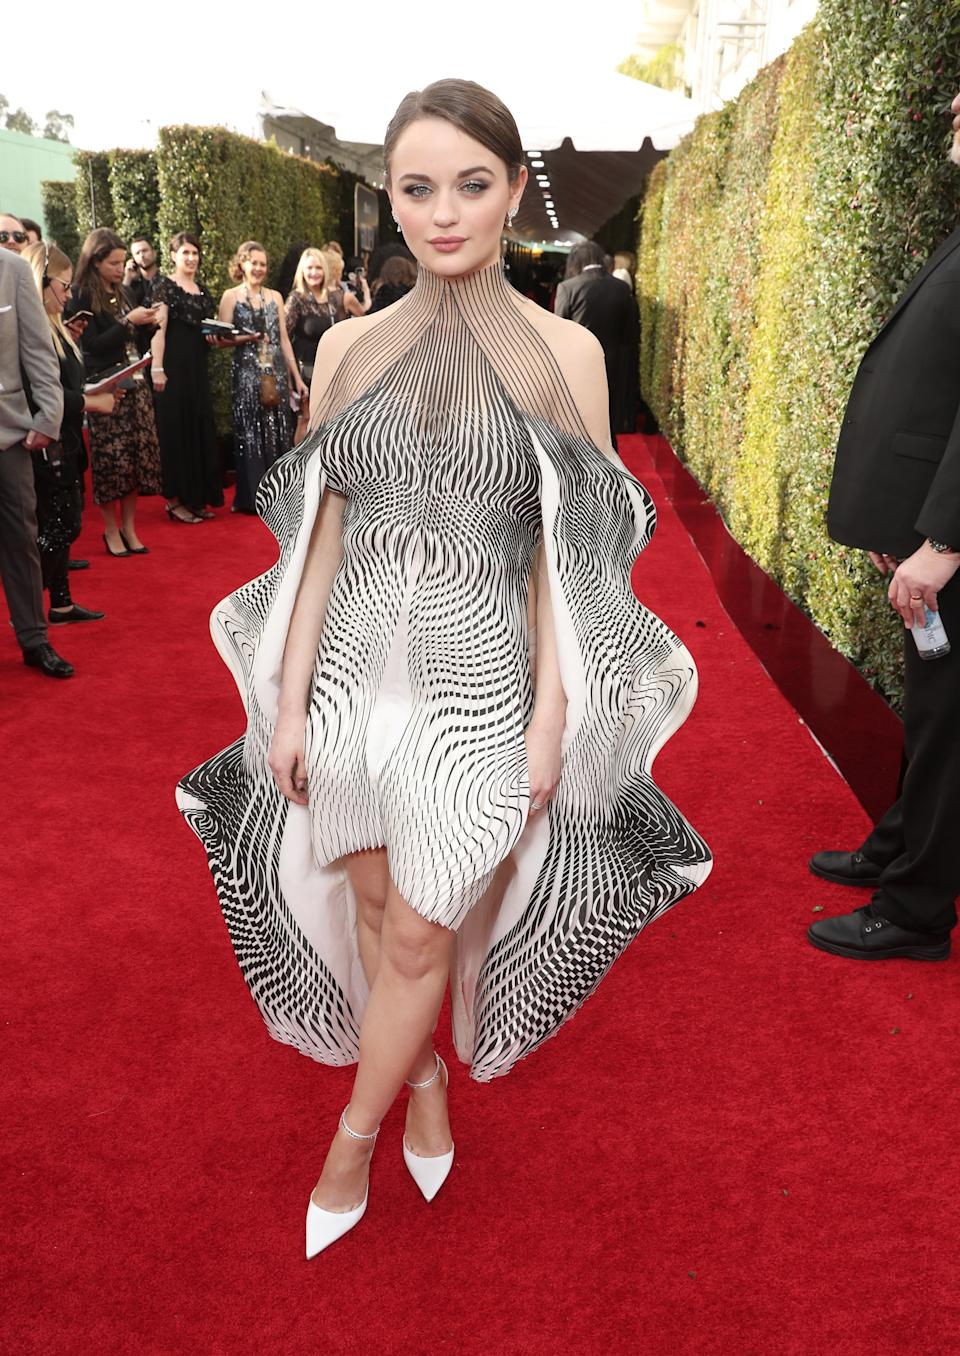 "<h1 class=""title"">Joey King in Iris van Herpen and Jimmy Choo shoes</h1><cite class=""credit"">Photo: Getty Images</cite>"